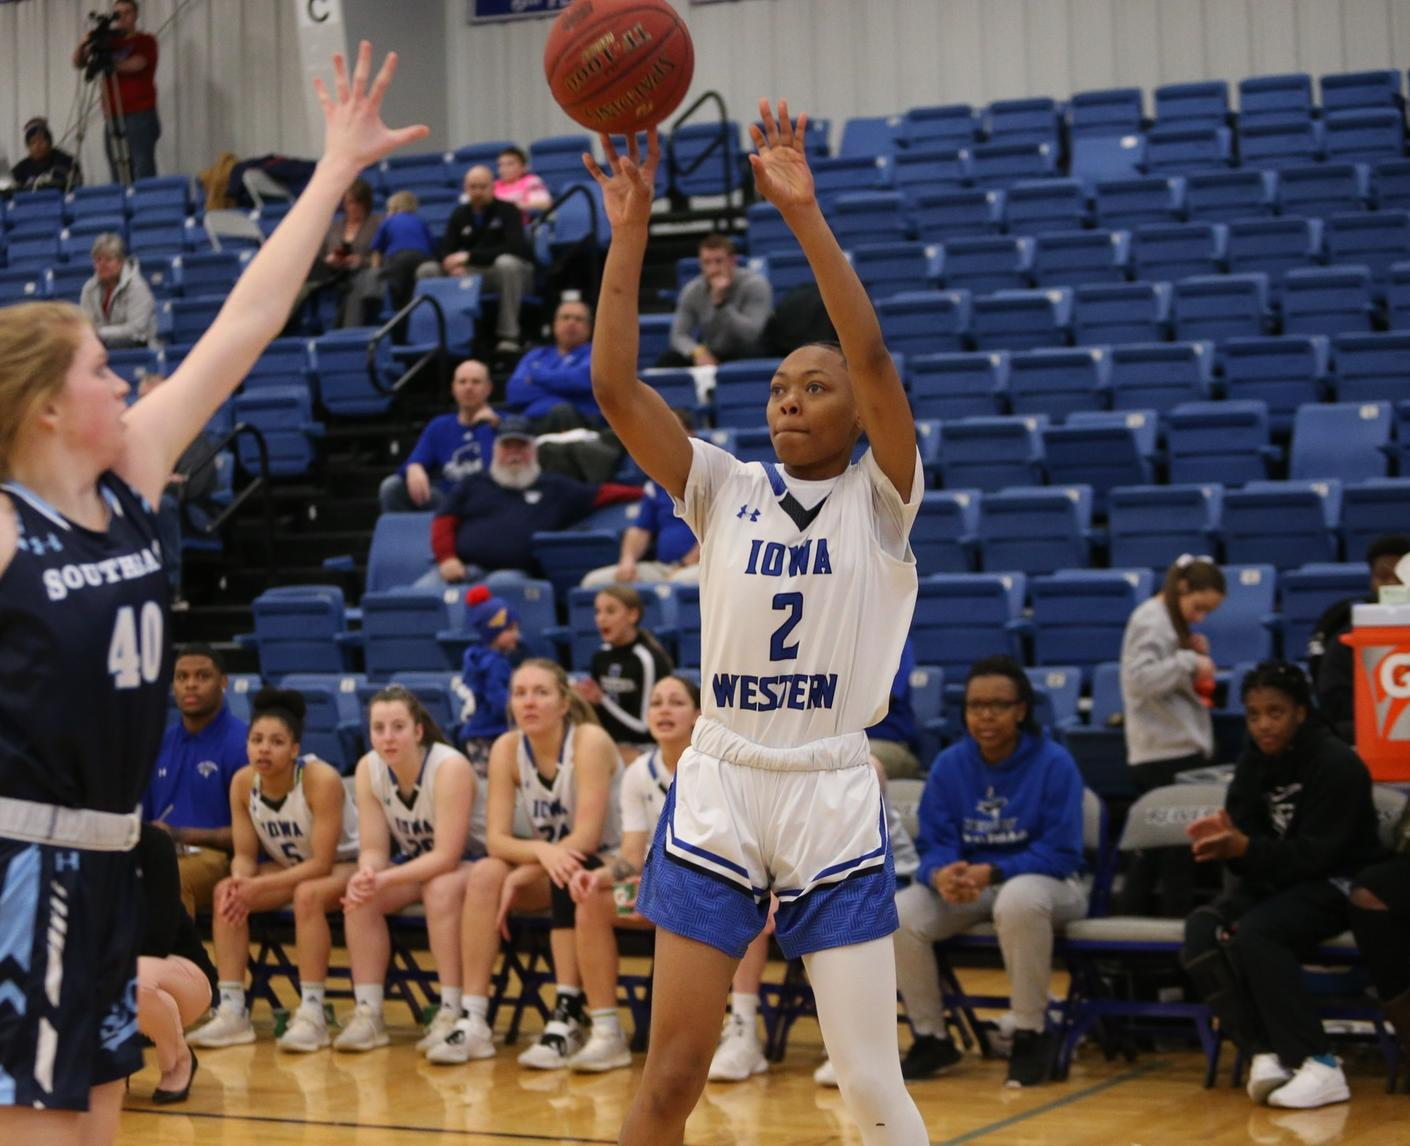 Cougars end winning streak for Reivers on last second shot